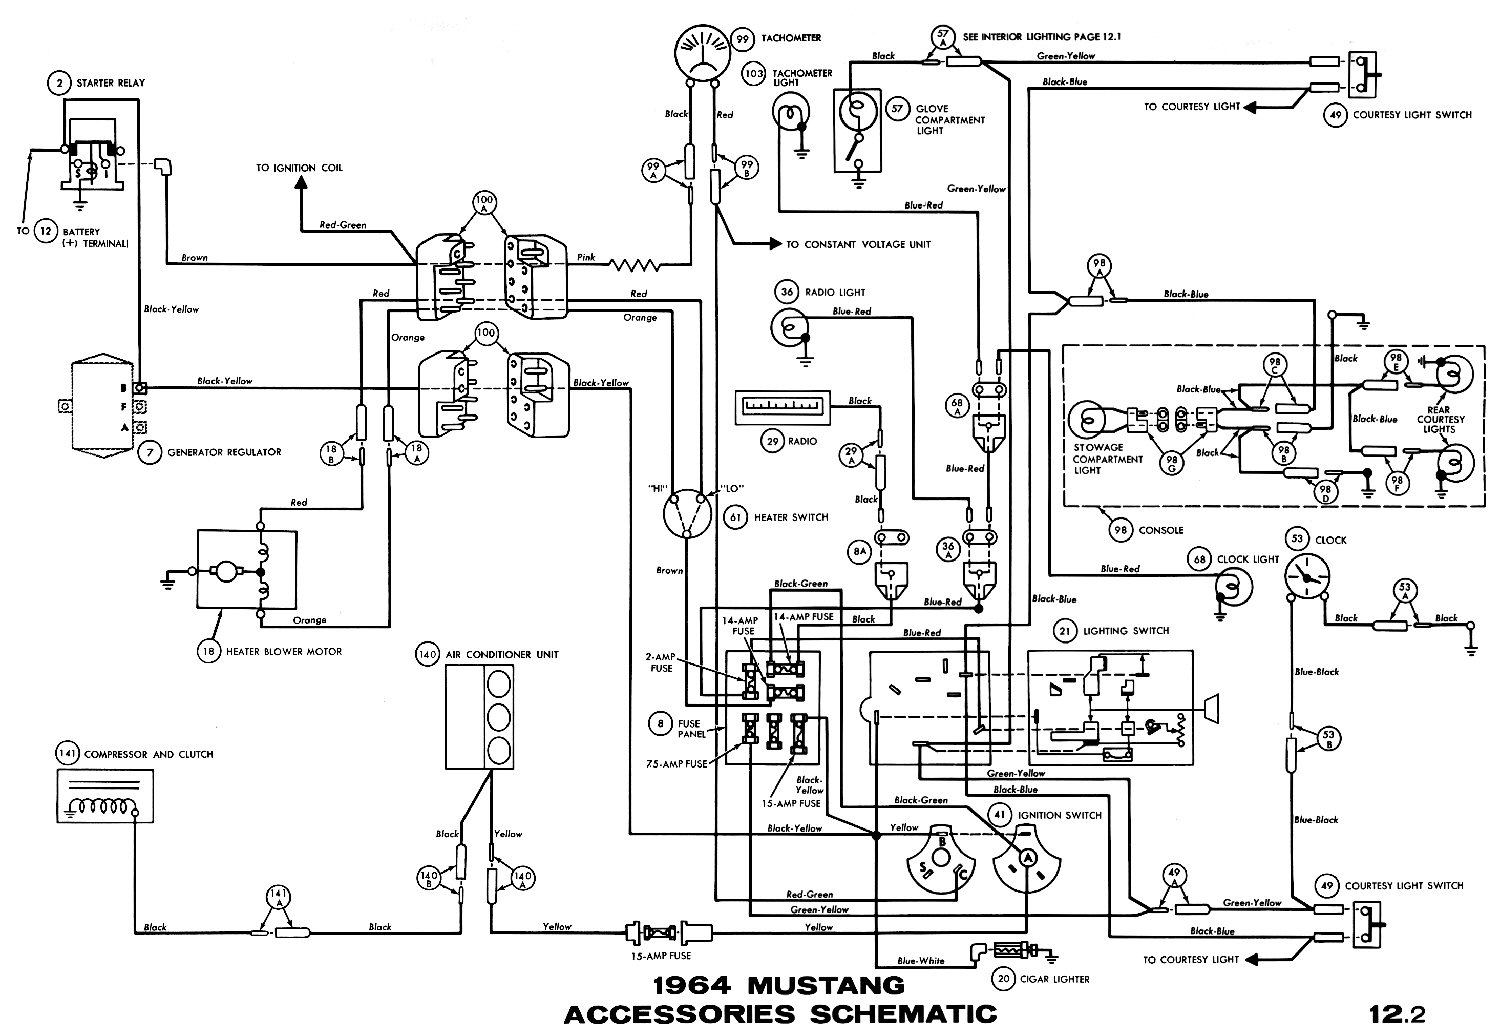 1964m 1964 mustang wiring diagrams average joe restoration 1969 ford mustang wiring diagram at mr168.co